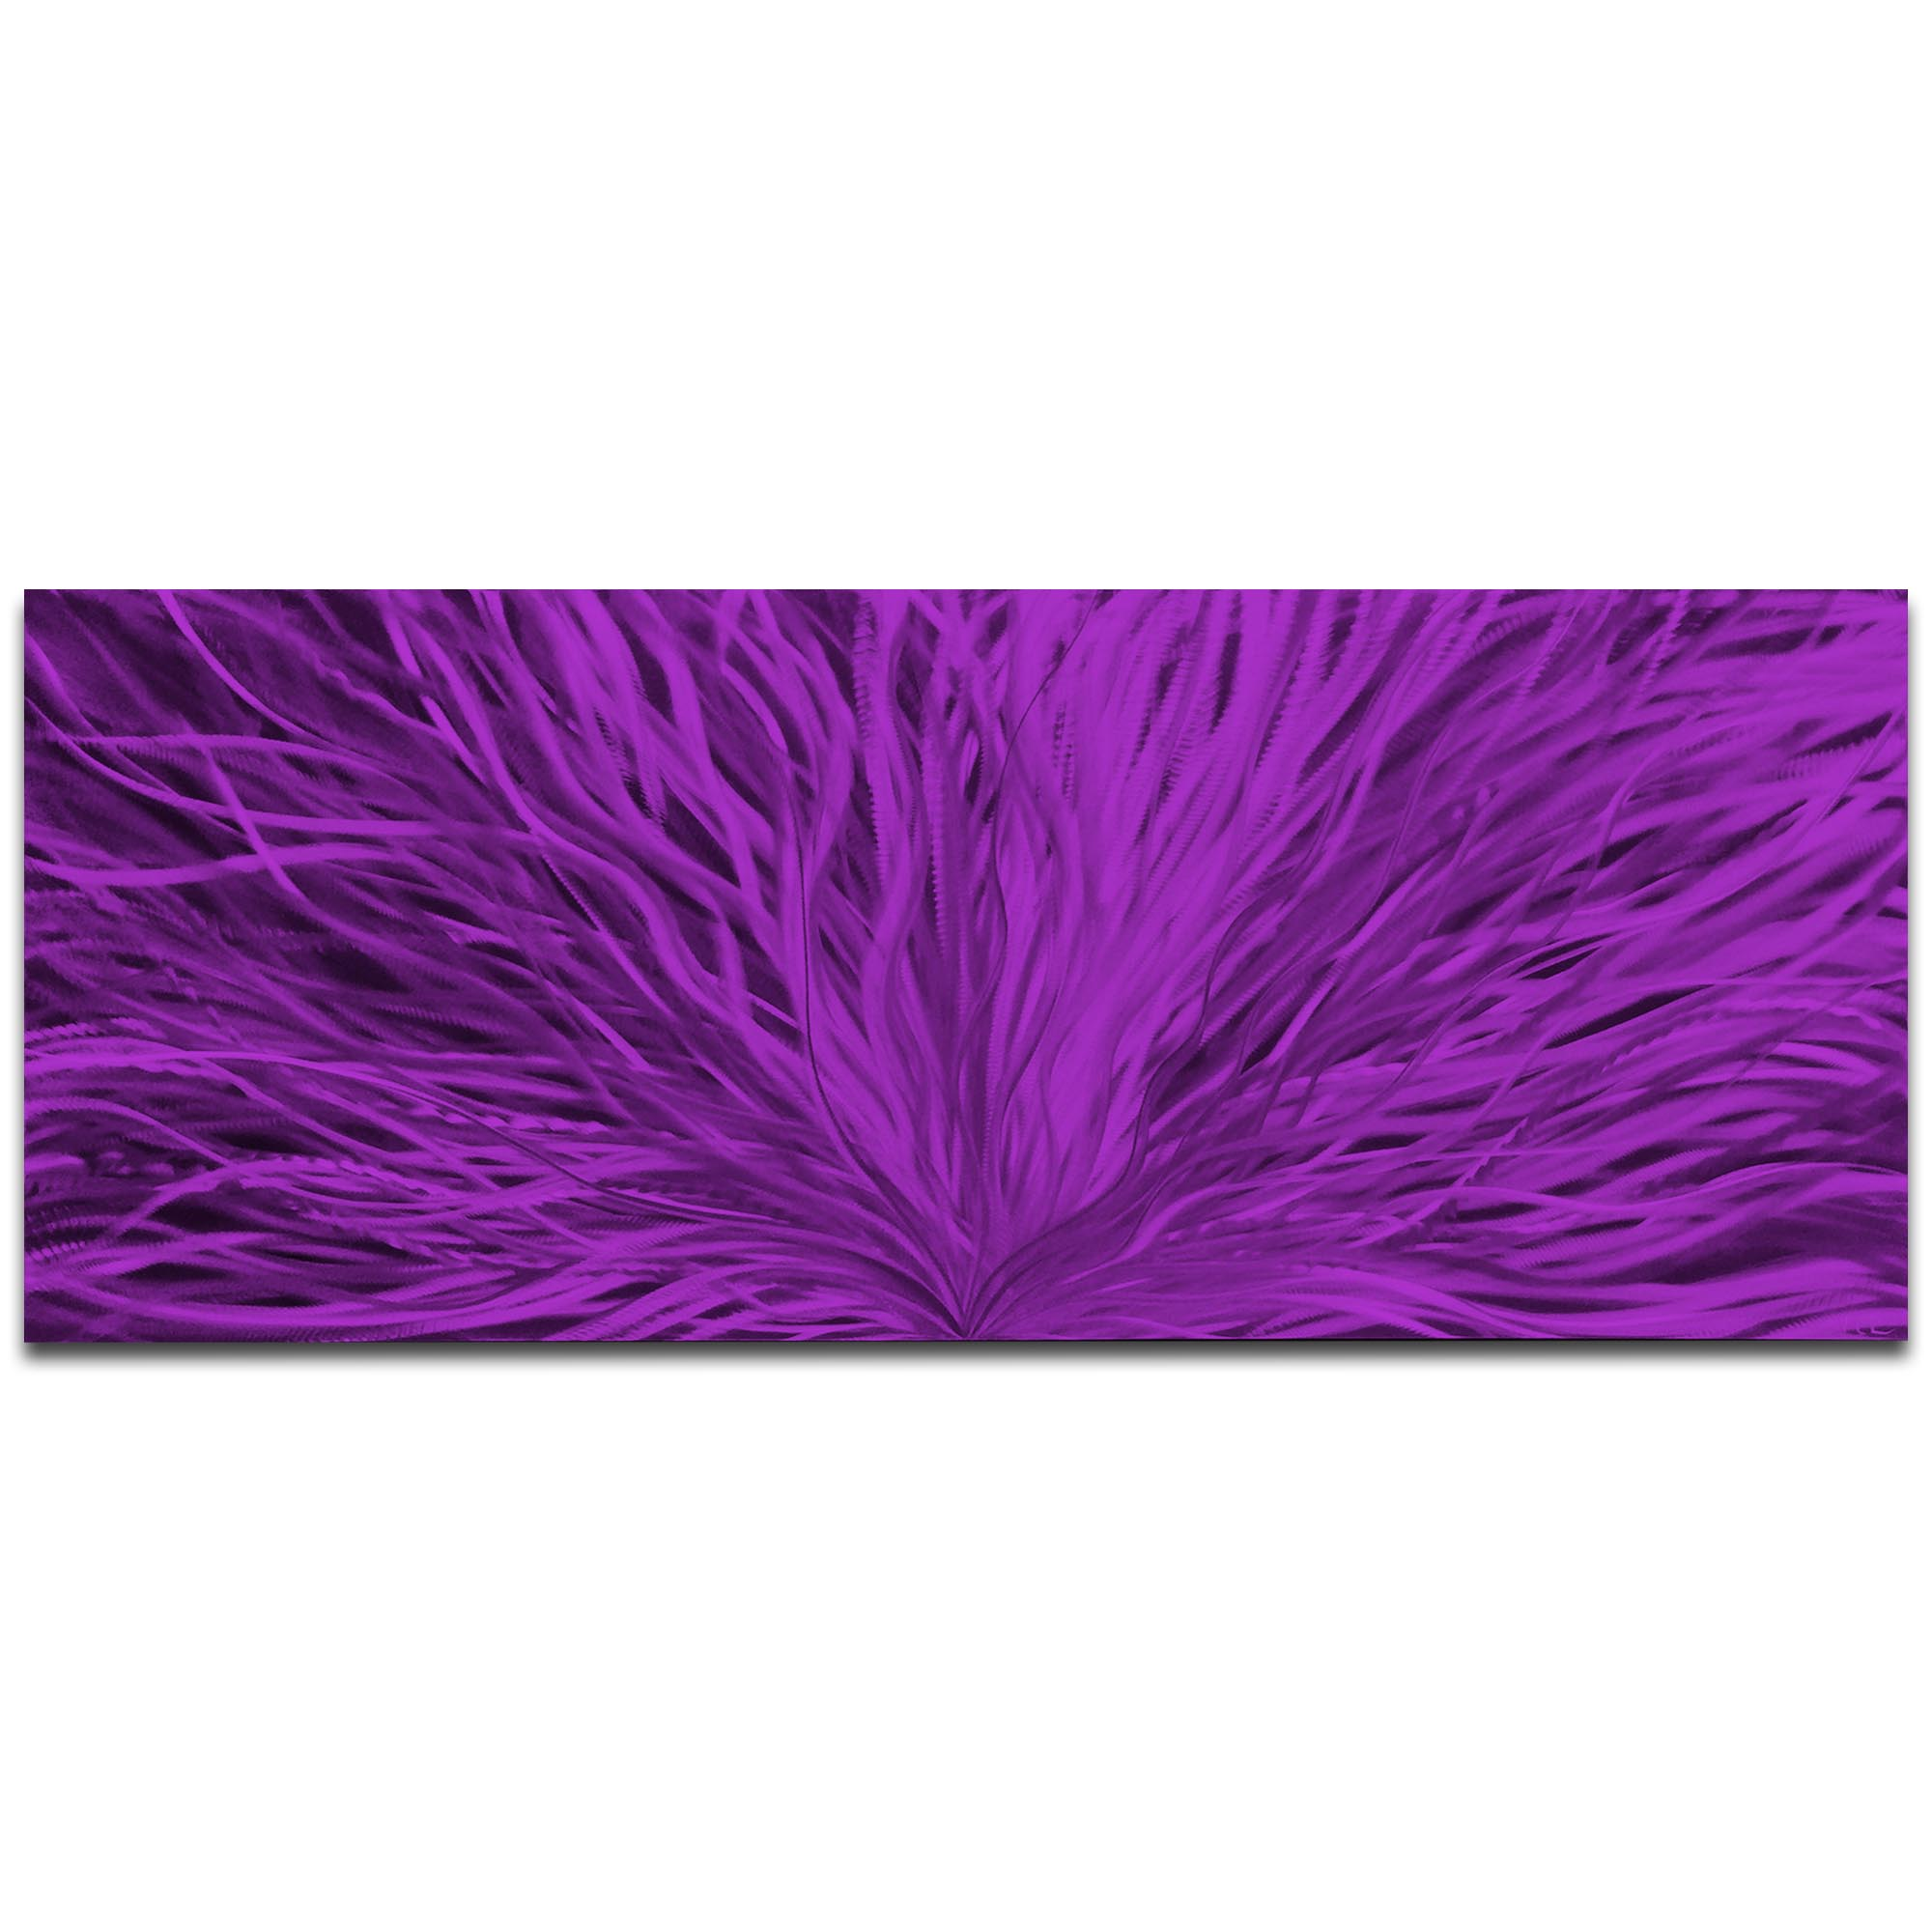 Helena Martin 'Blooming Purple' 60in x 24in Original Abstract Art on Ground and Painted Metal